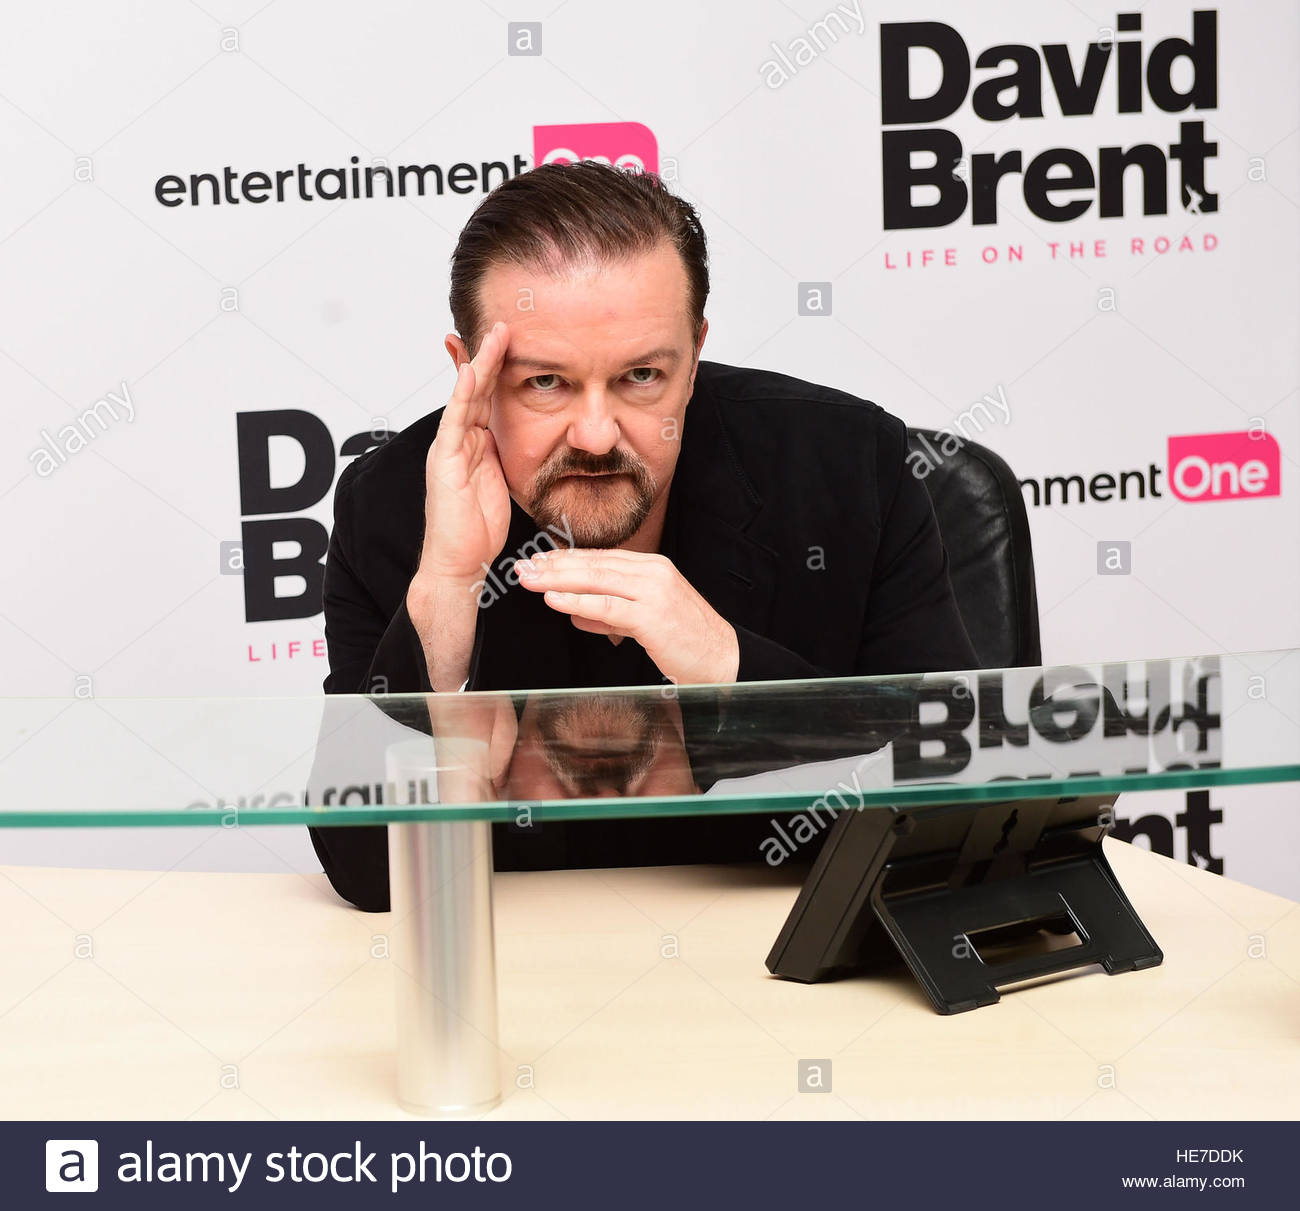 Embargoed to 0001 Monday December 19 File photo dated 10/08/16 of Ricky Gervais attending the world premiere of - Stock Image